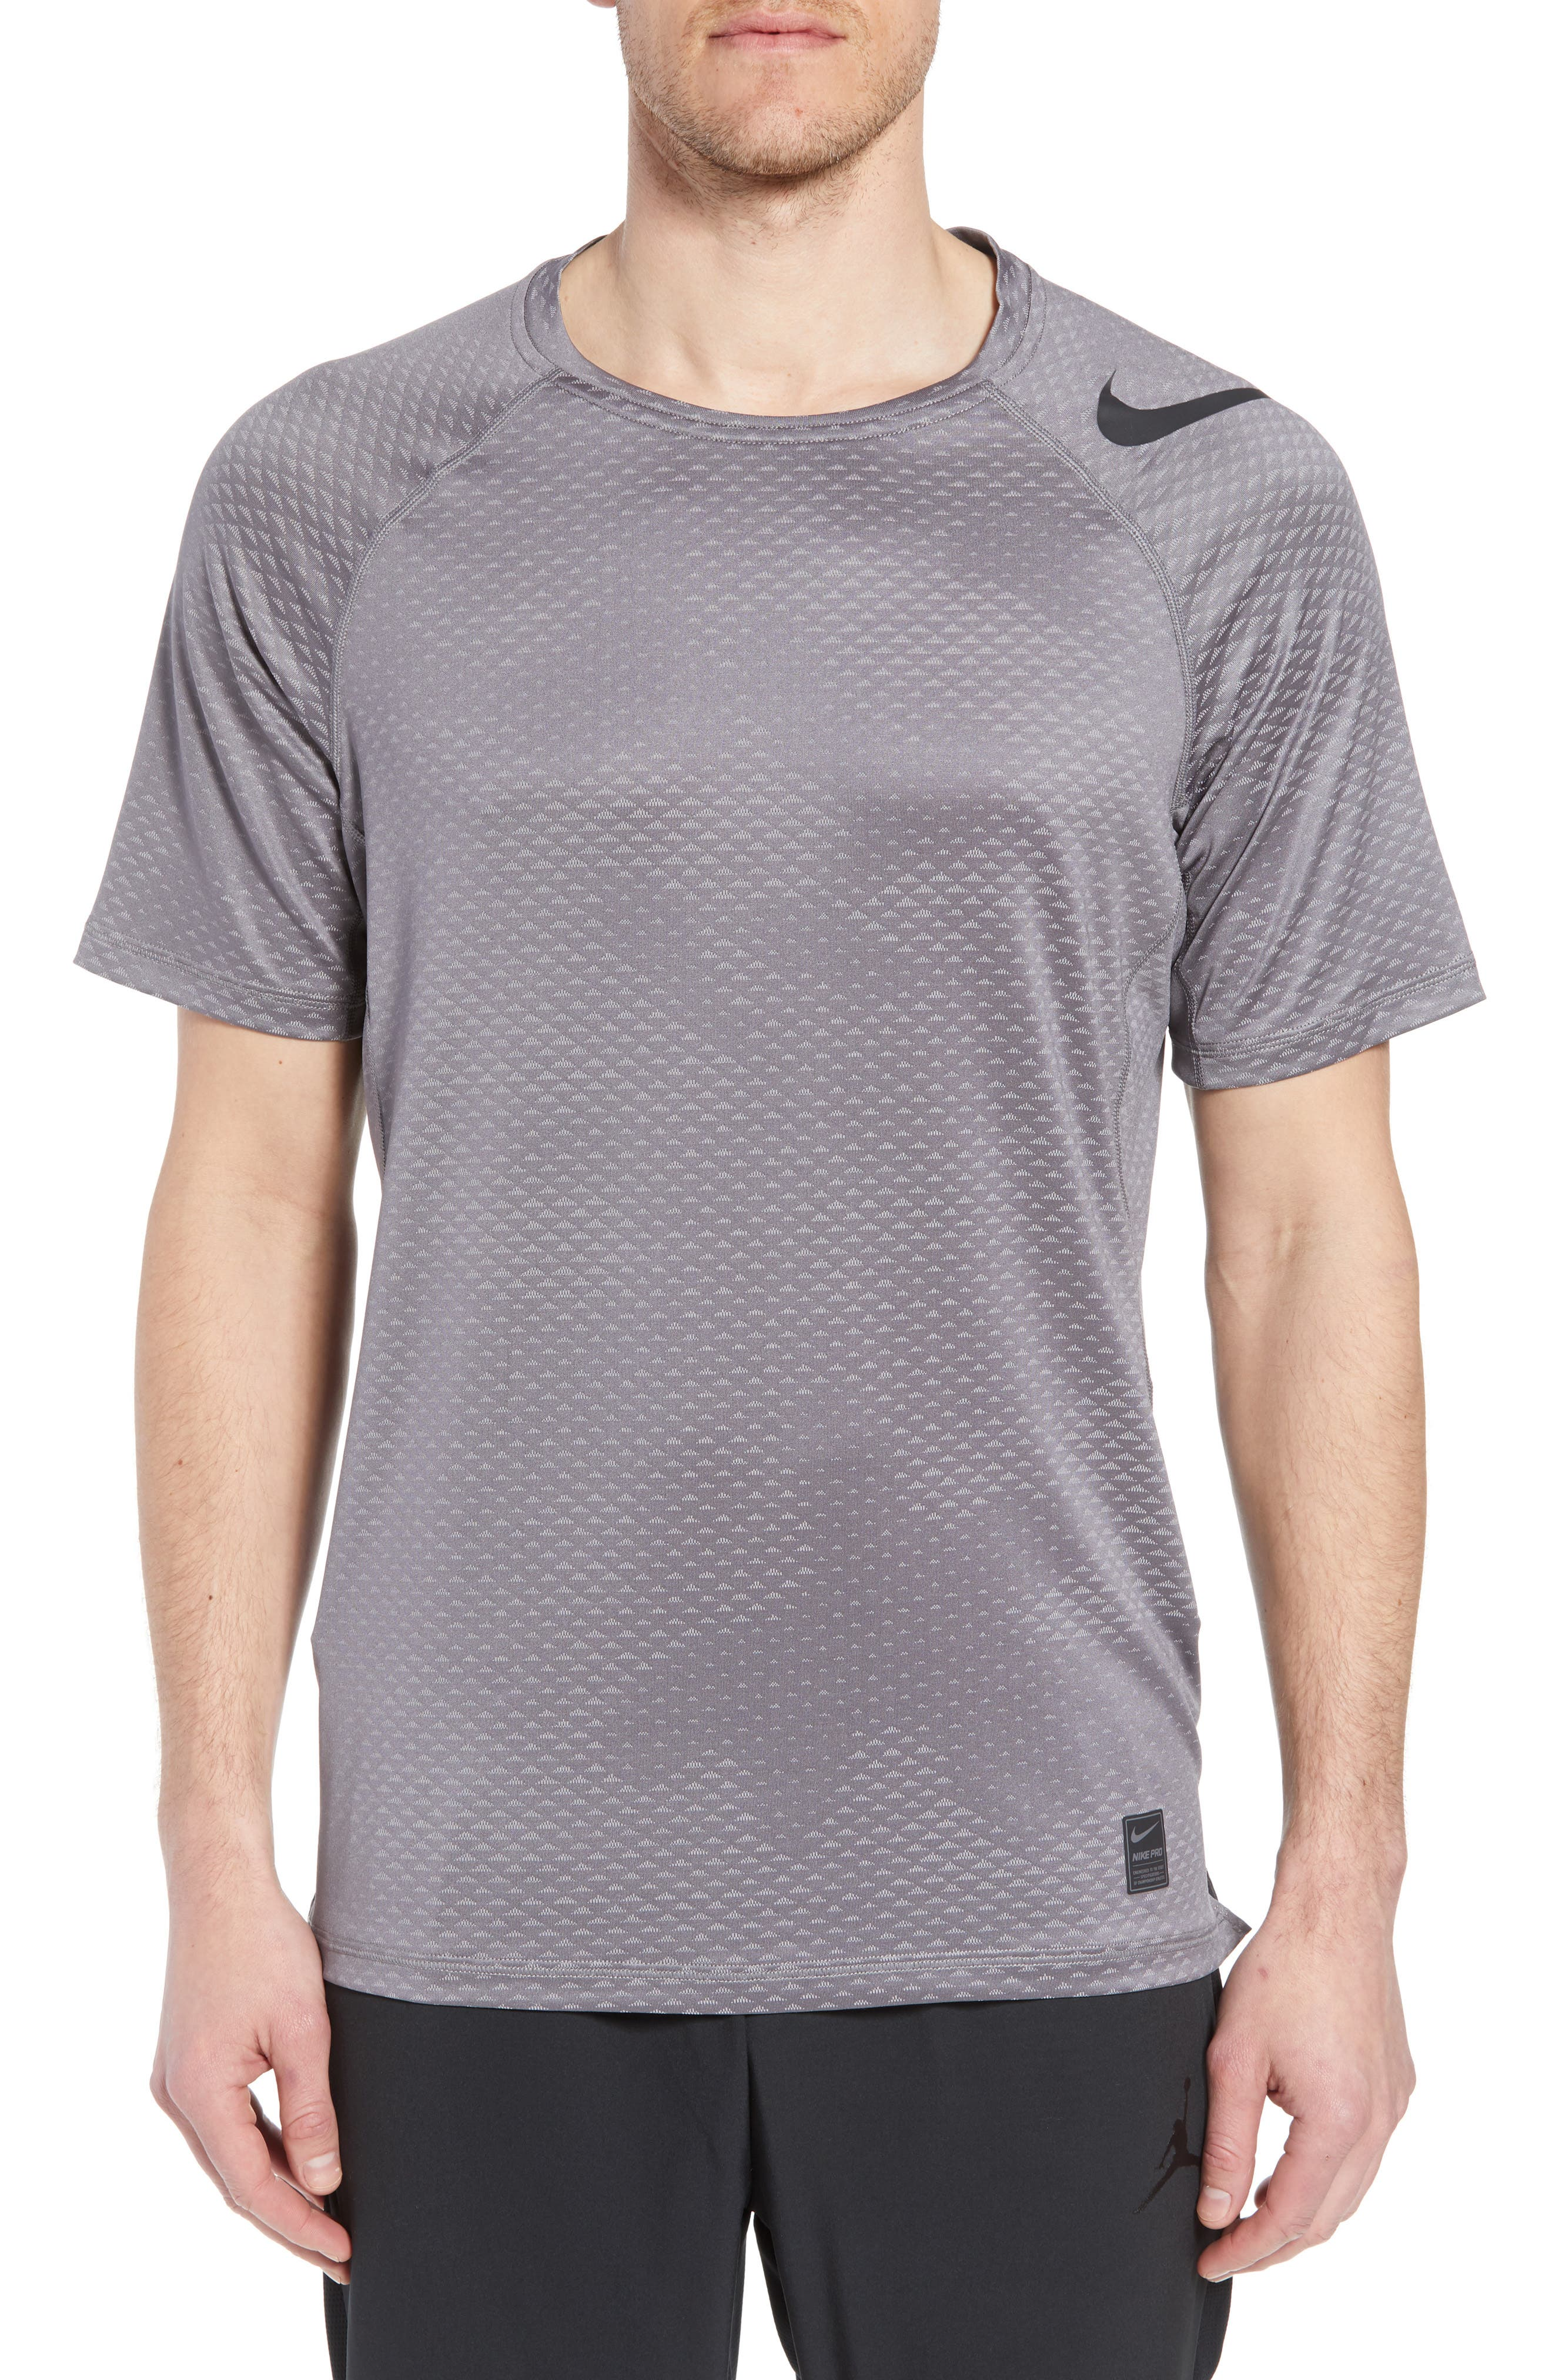 Pro HyperCool Fitted Crewneck T-Shirt,                             Main thumbnail 1, color,                             Atmosphere Grey/ Black